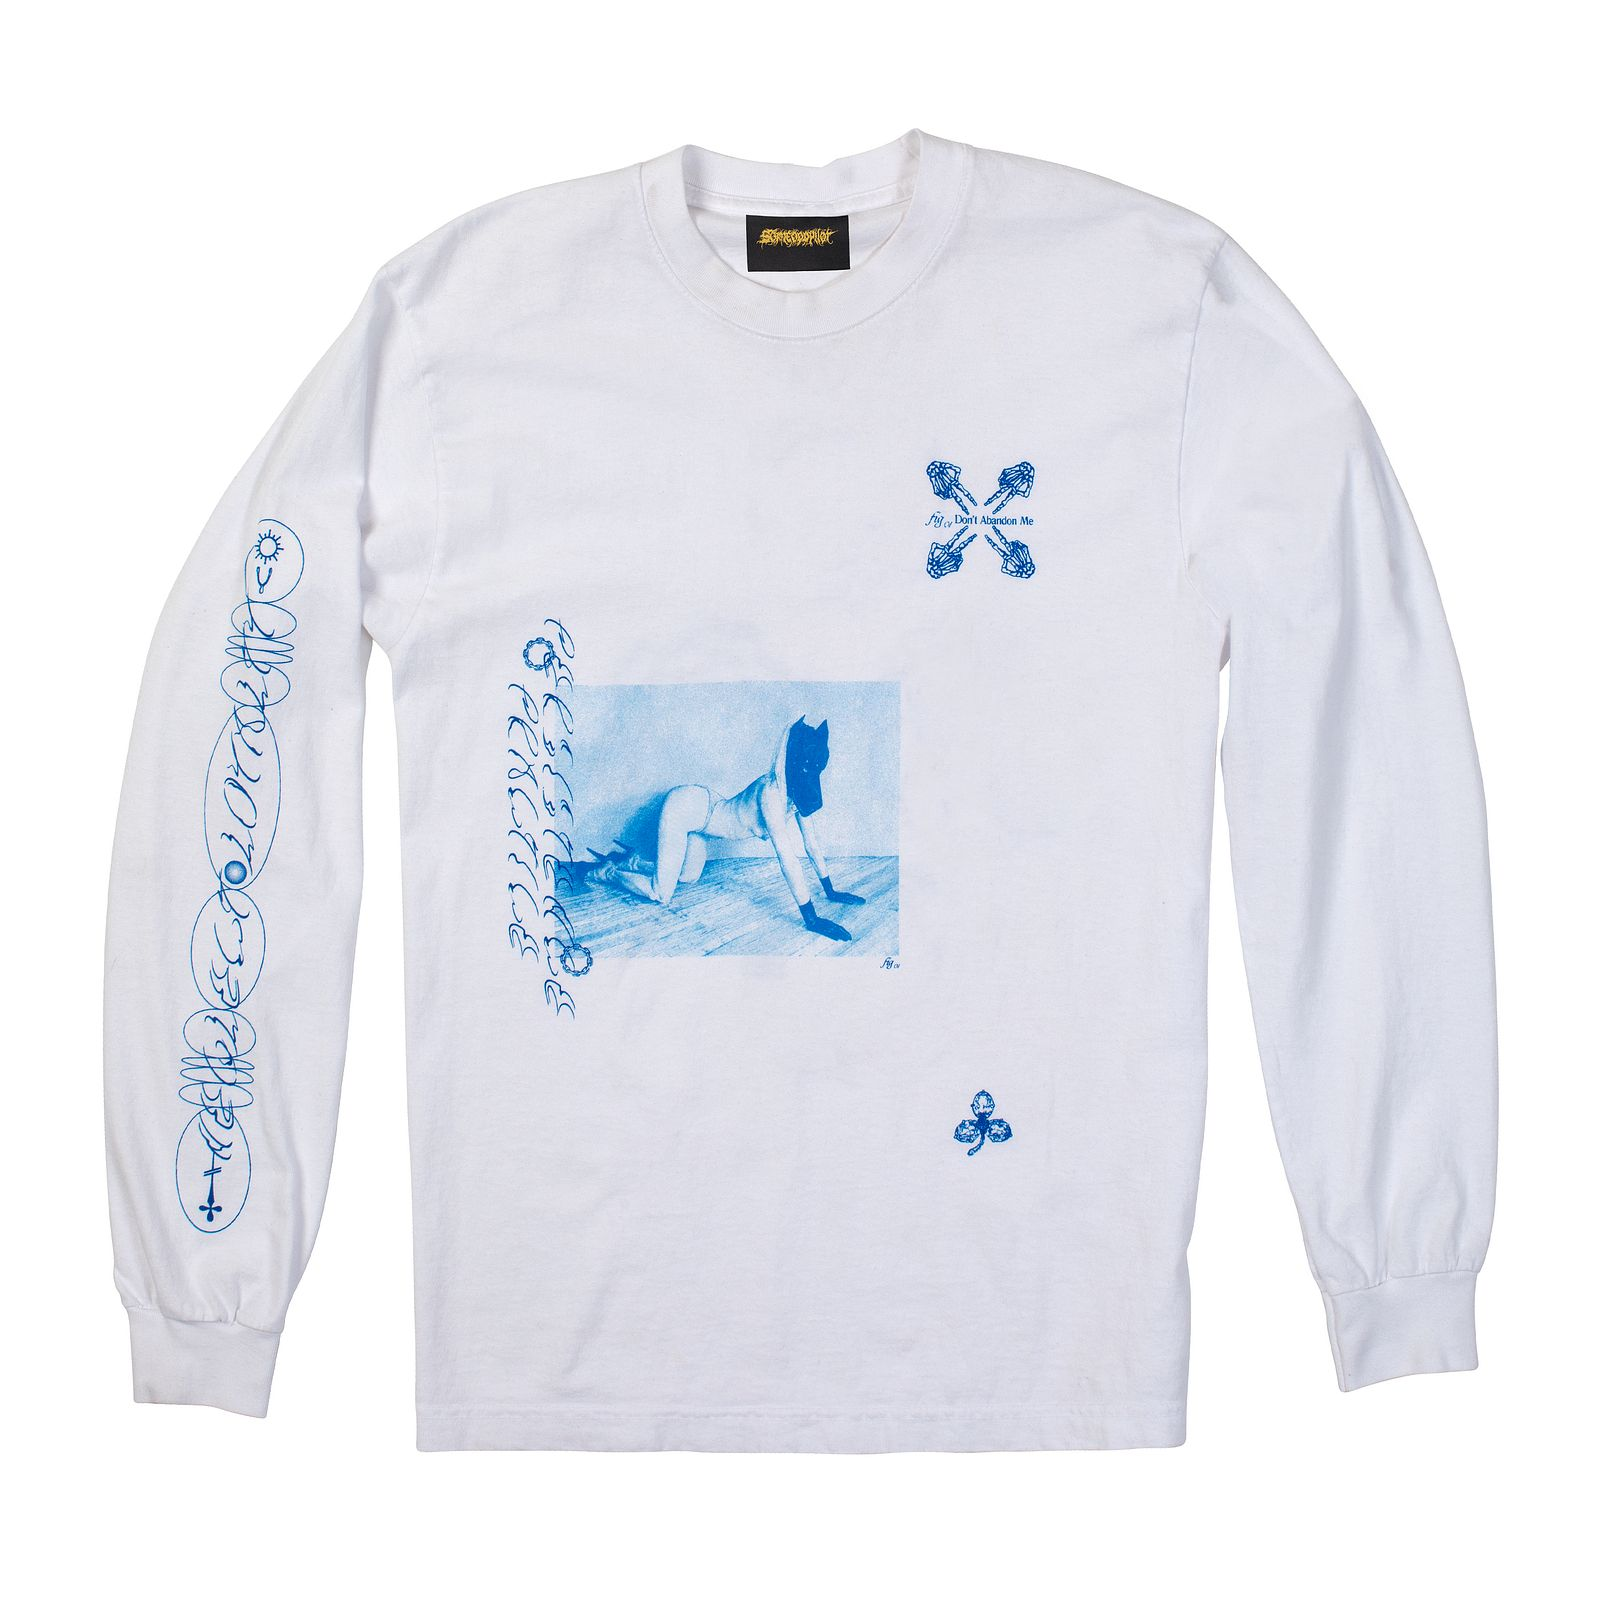 Patience and Practice Longsleeve